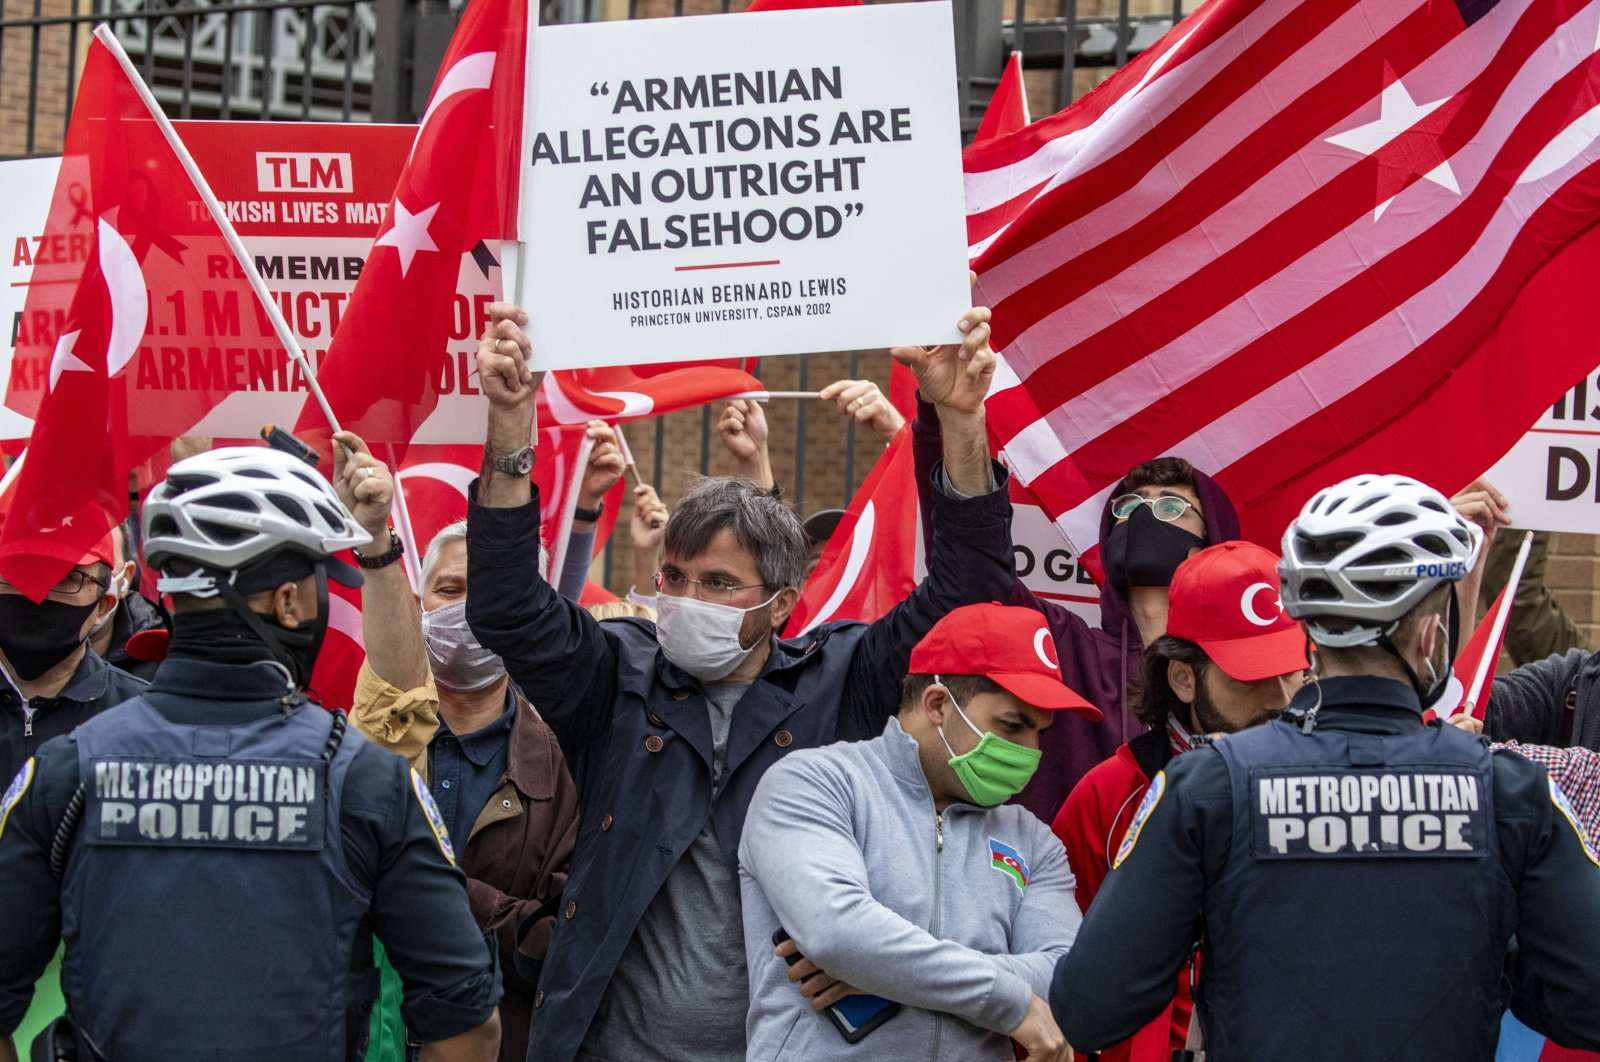 """Supporters of Turkey carrying a sign that reads prominent historian Bernard Lewis' quote """"Armenian allegations are an outright falsehood"""" face off with Armenian supporters outside the Turkish Embassy, Washington, D.C., U.S., April 24, 2021. (AFP Photo)"""